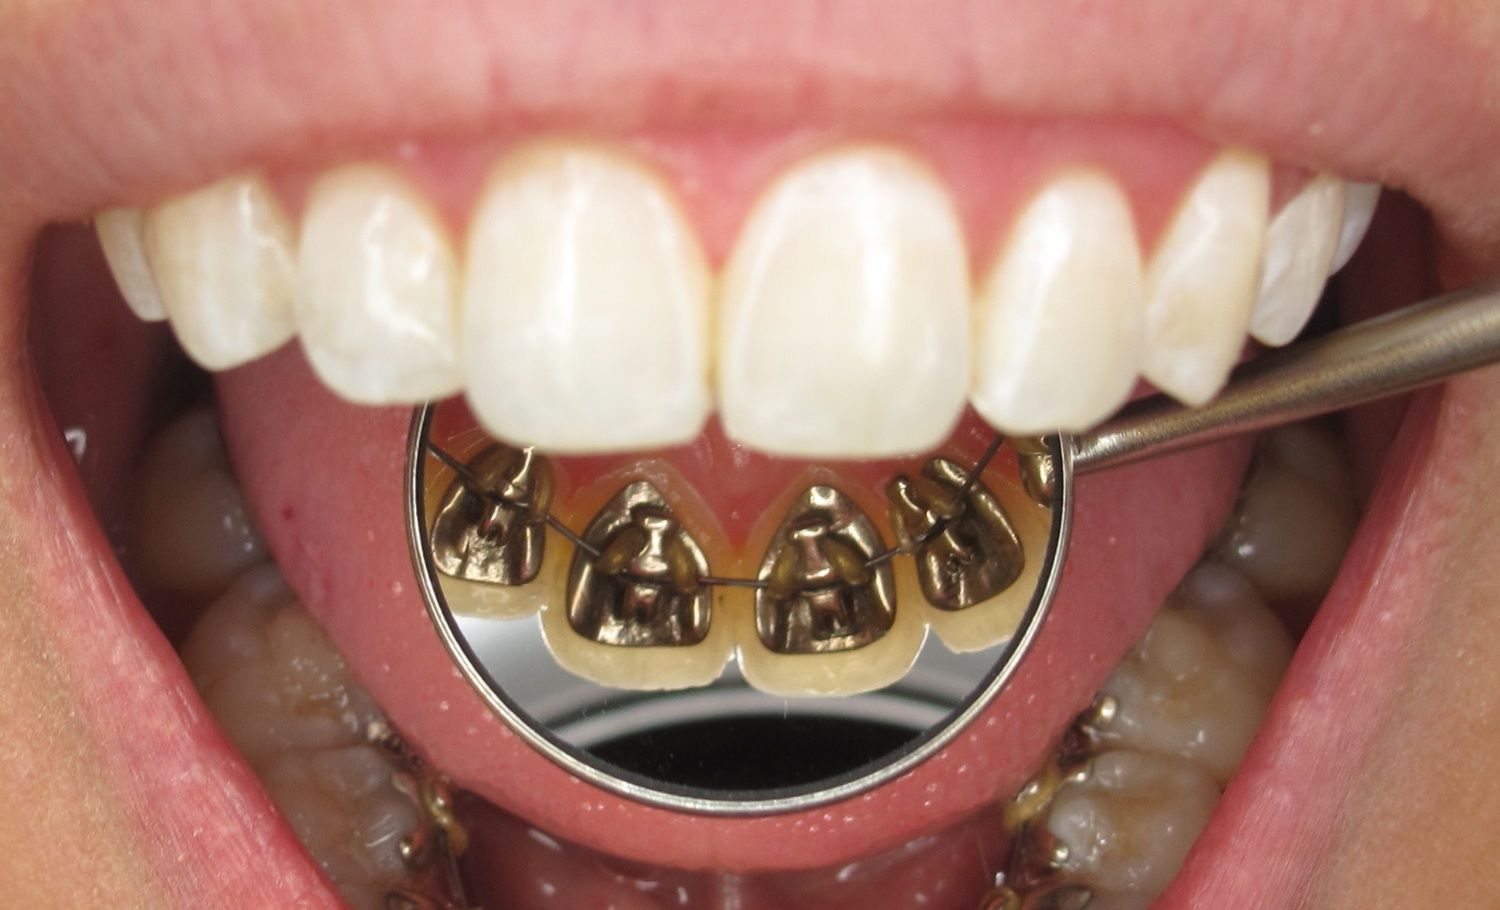 Lingual Braces And Cost Of Lingual Braces Ortodonti Braket Dis